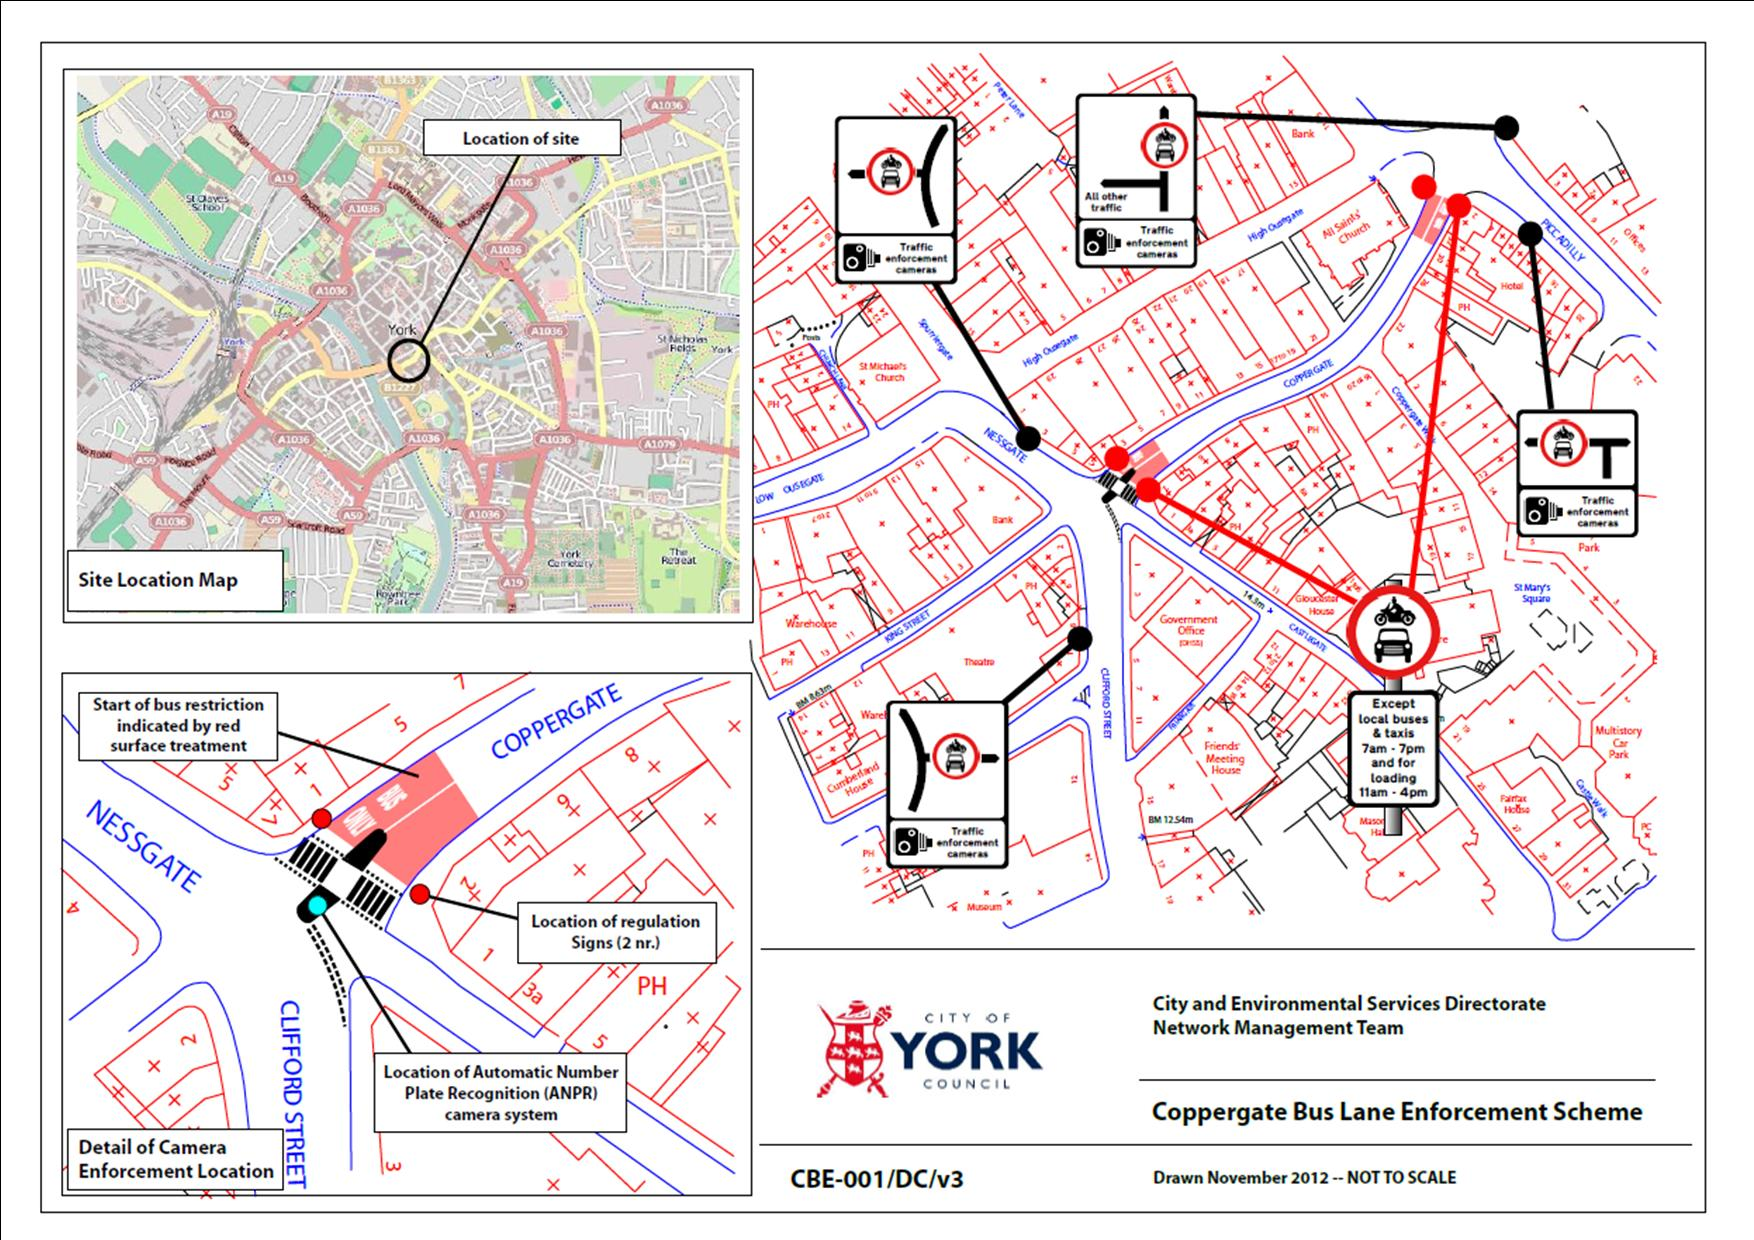 Coppergate bus lane enforcement plans  June 2013